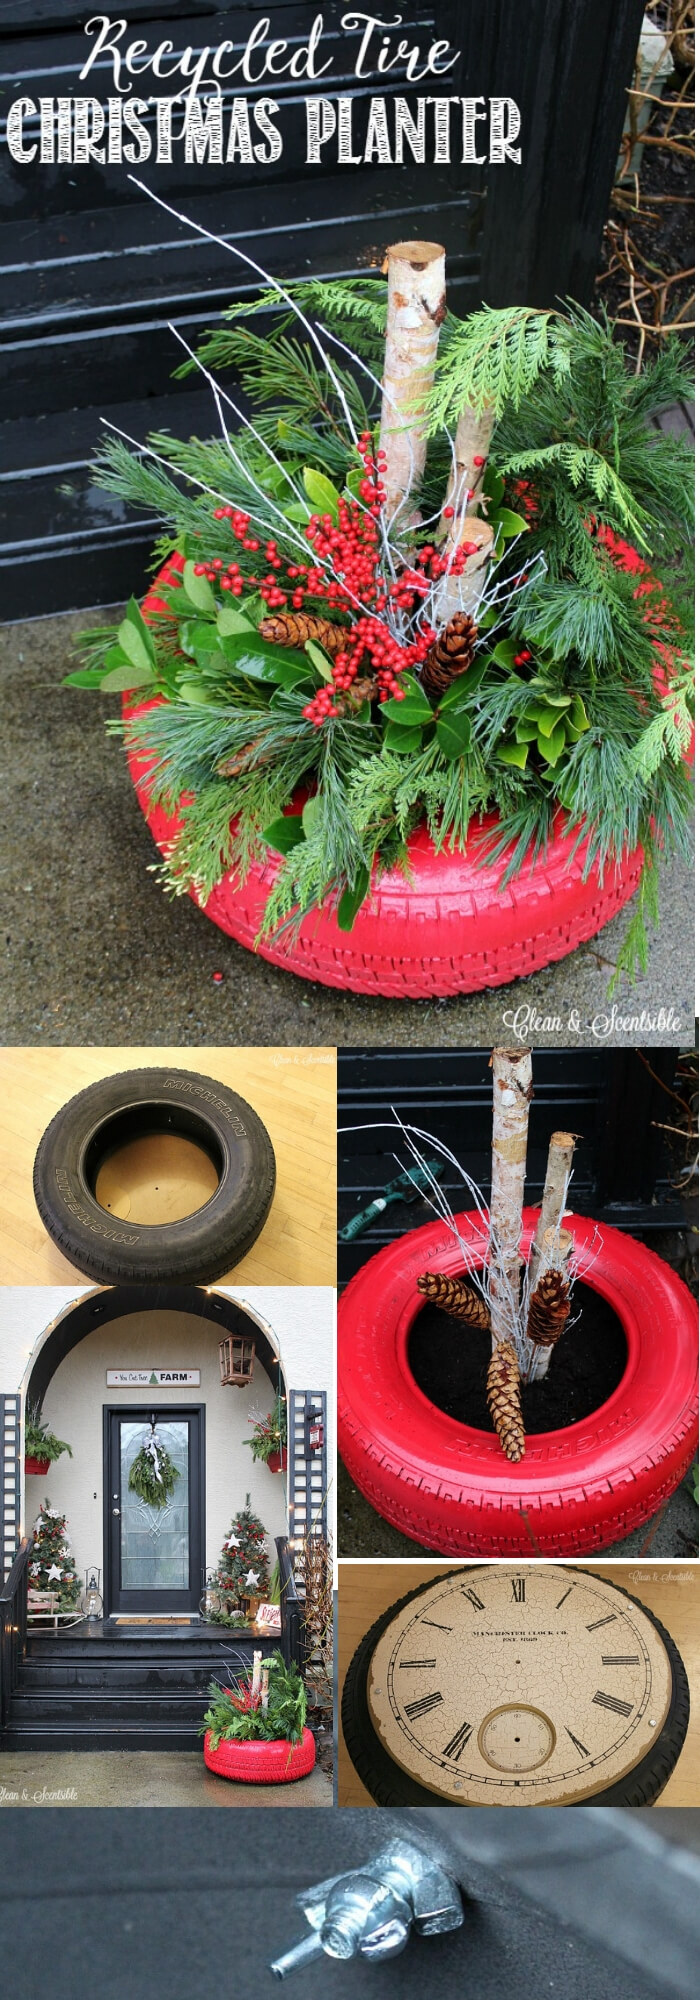 Recycled Tire Christmas Planter | Best Recycled Tire Christmas Decoration Ideas | FarmFoodFamily.com